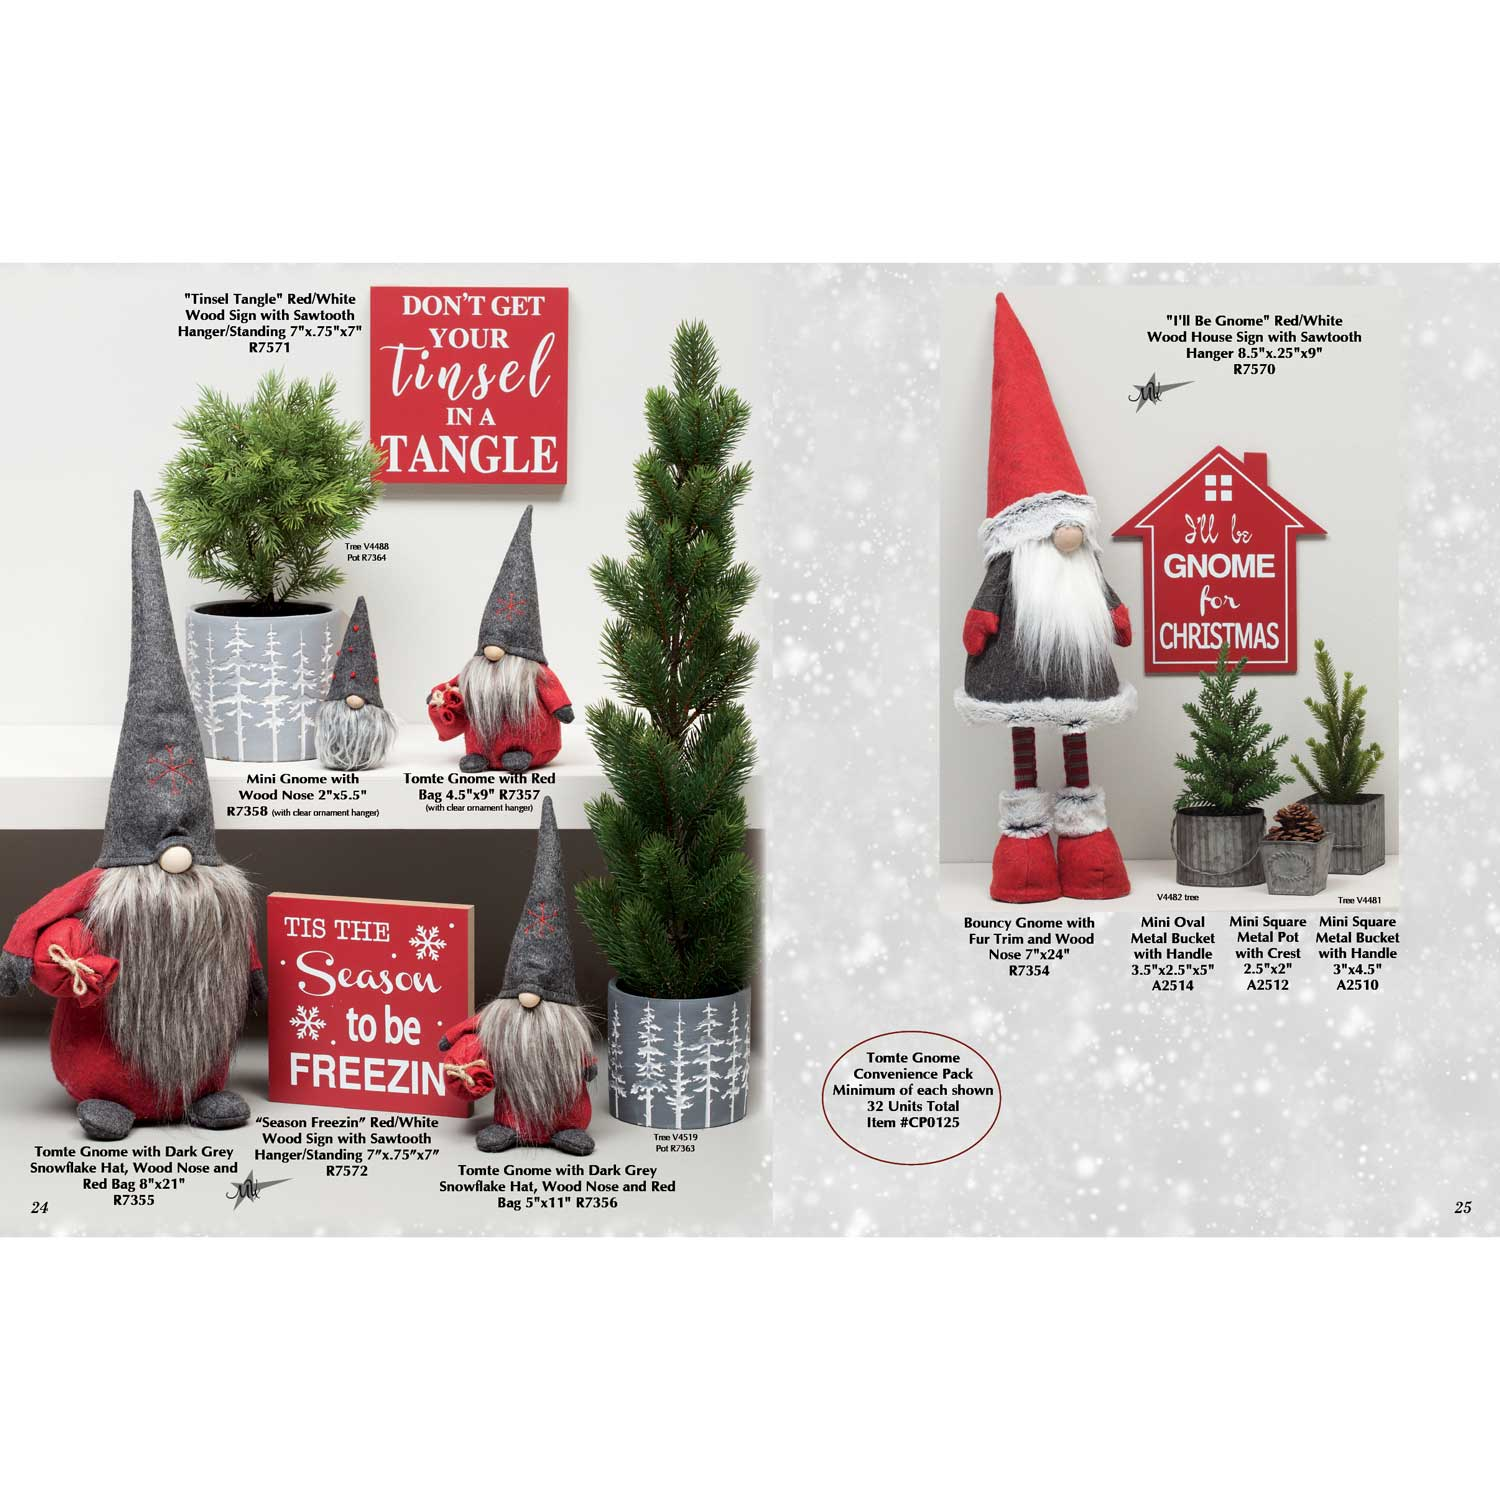 Tomte Gnome Convenience Pack